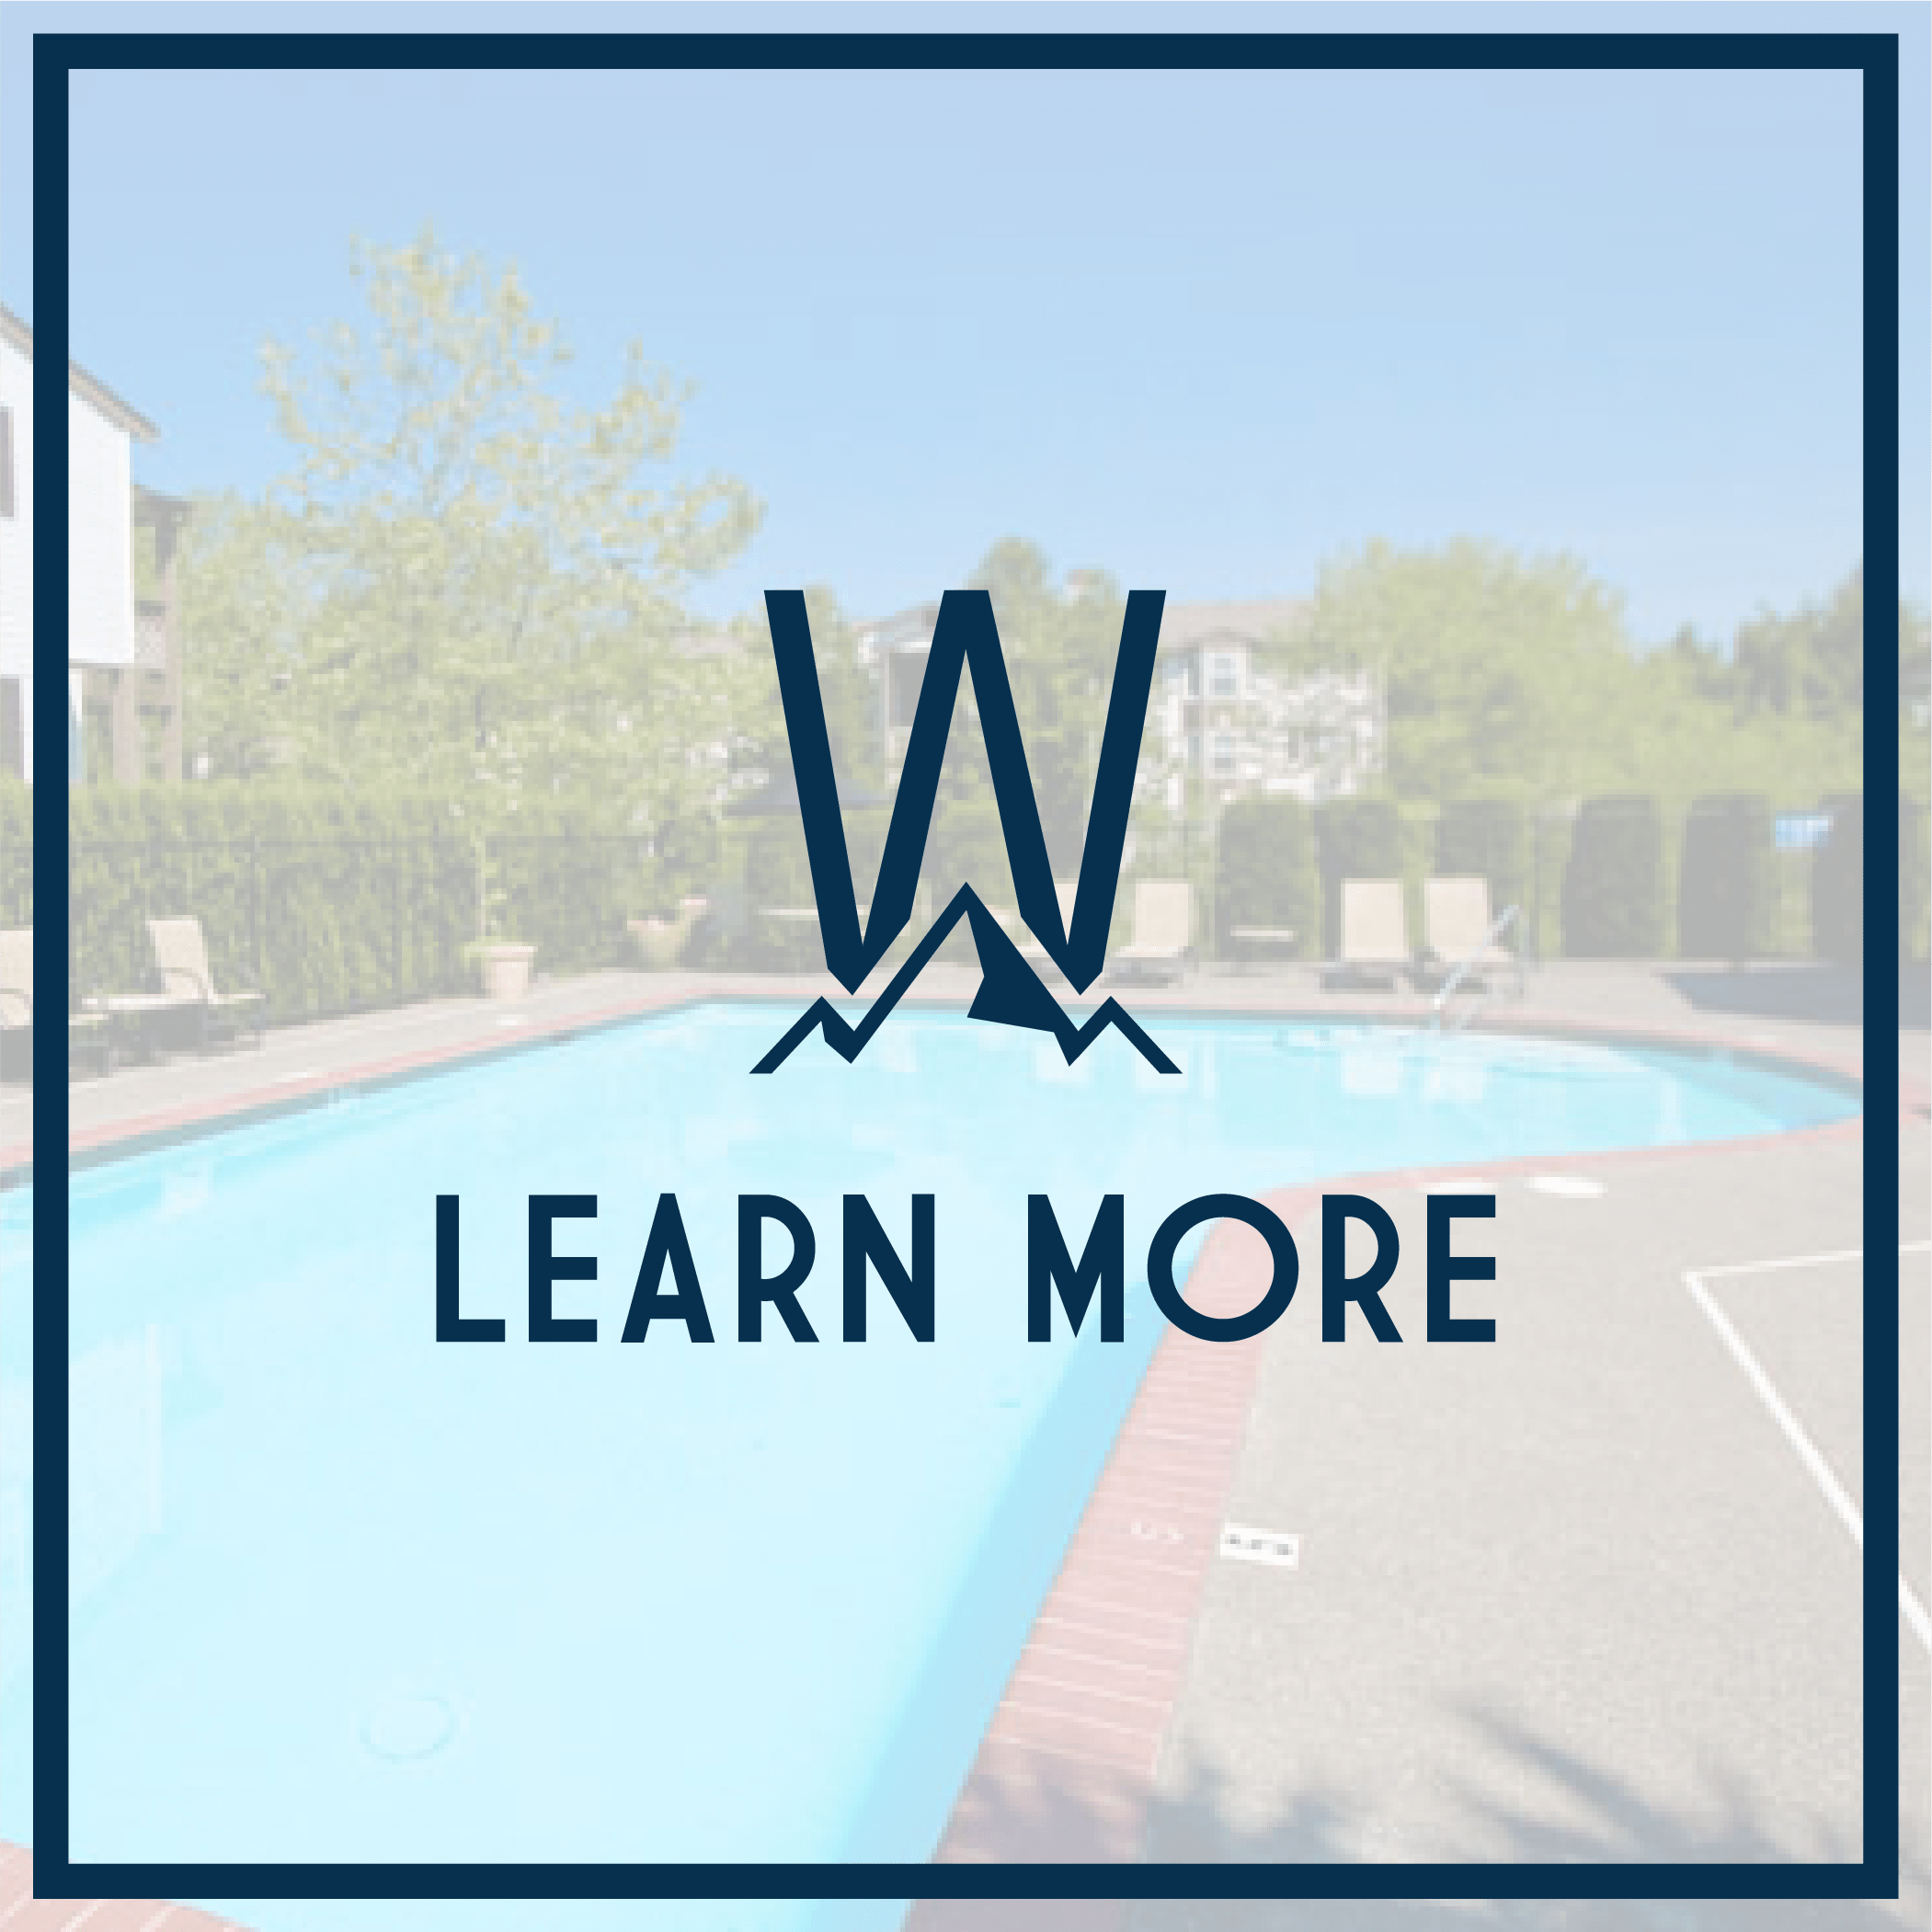 Learn more about the amenities plans at The Winsley in Everett, Washington